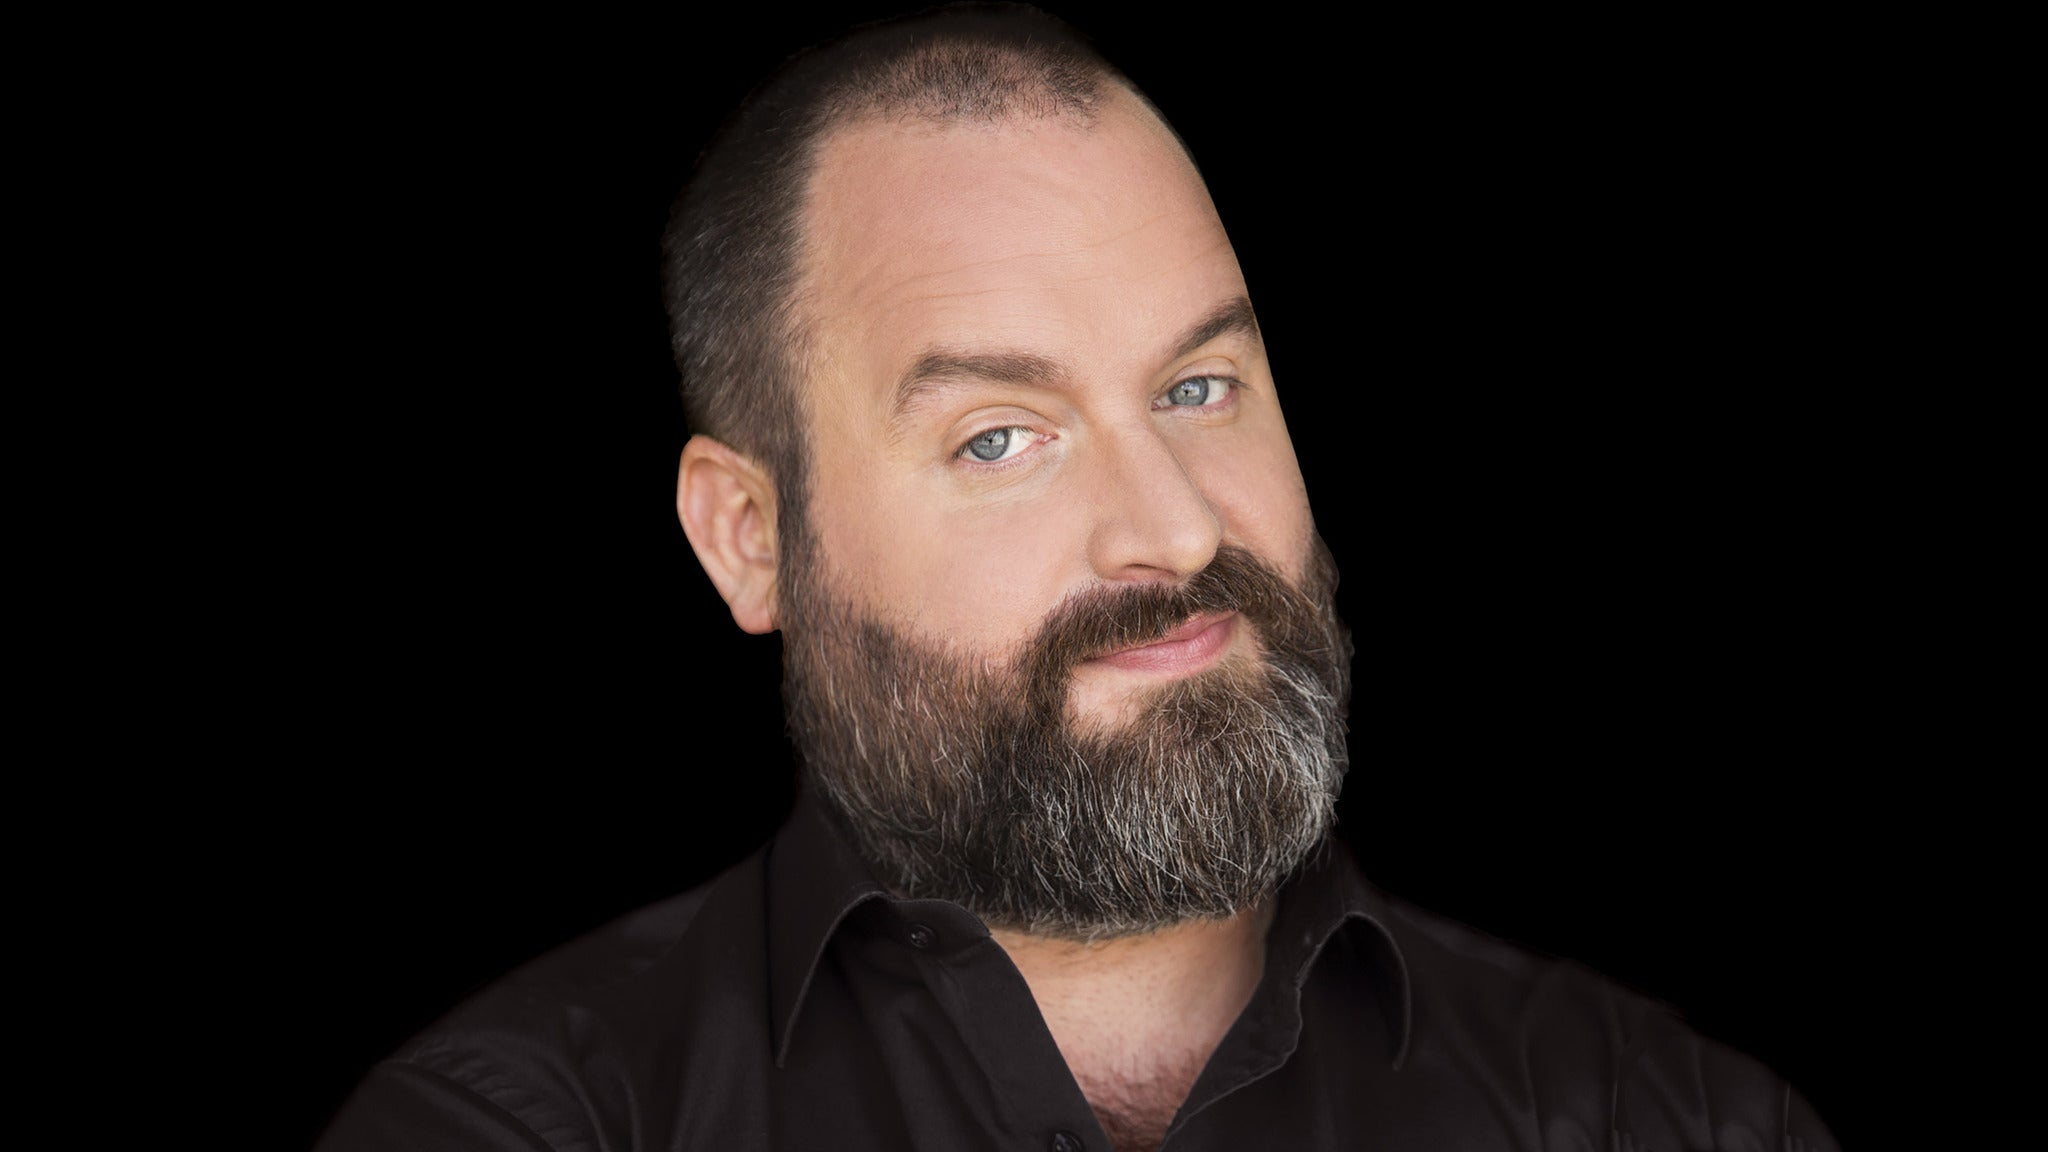 Tom Segura at Brea Improv - Brea, CA 92821